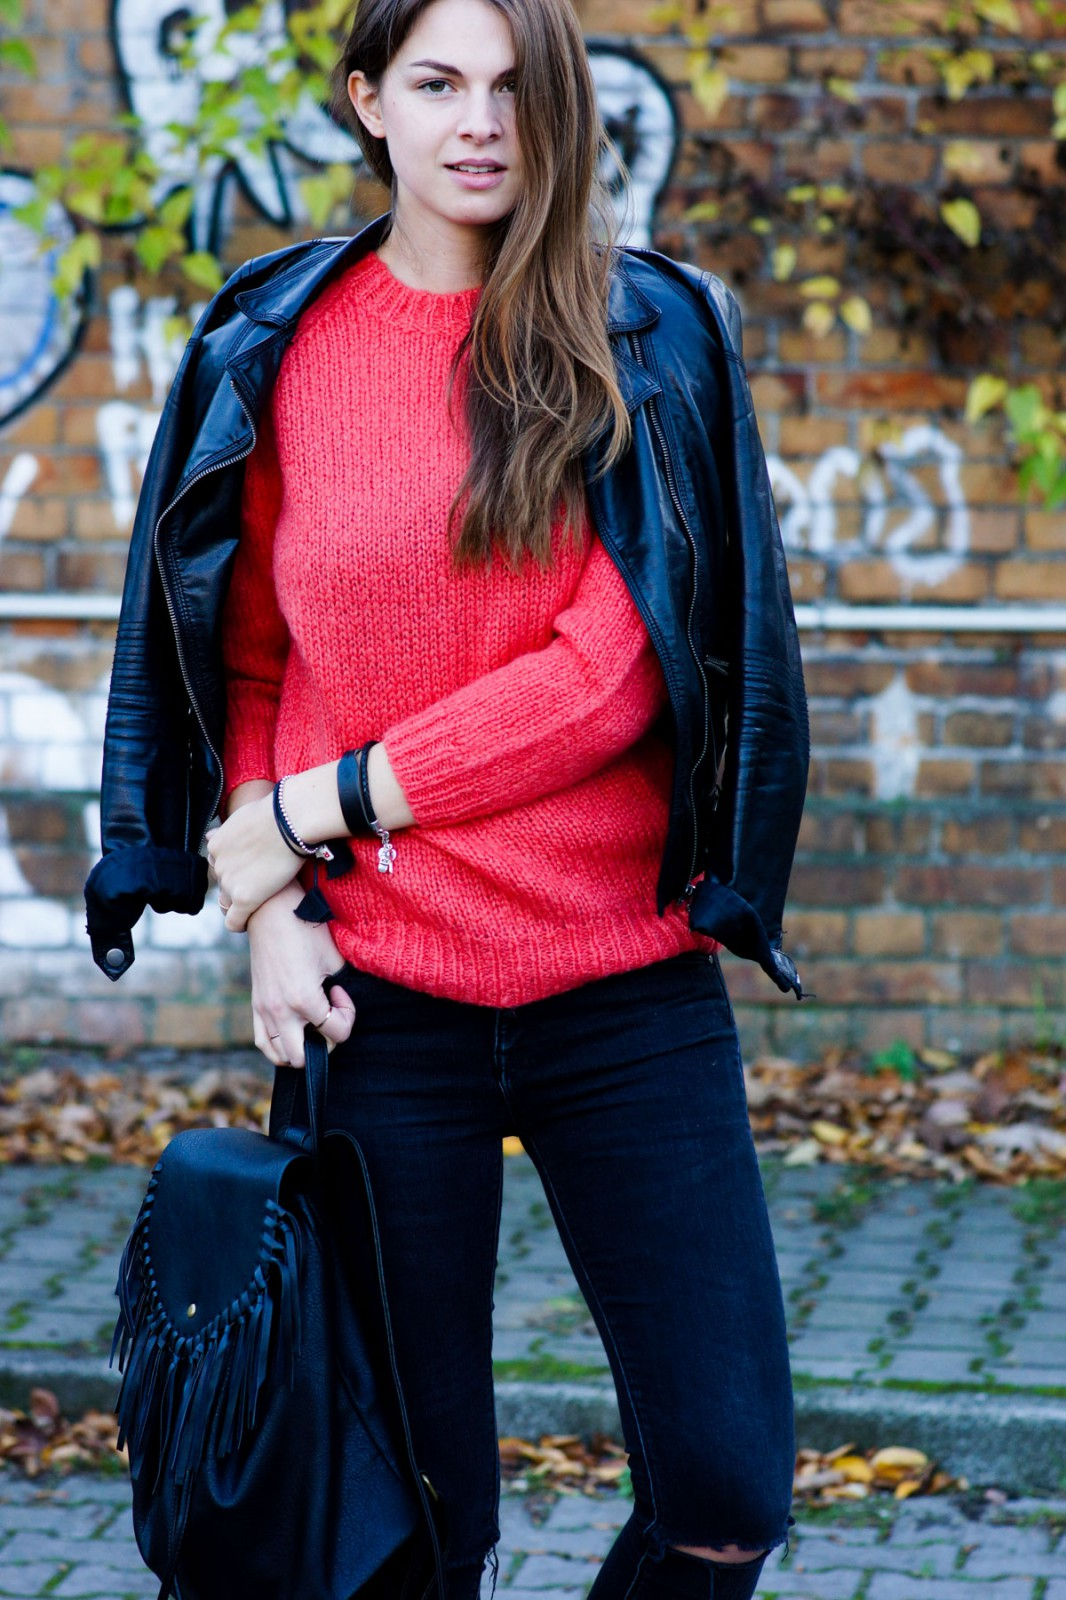 Autumn Outfit 2015